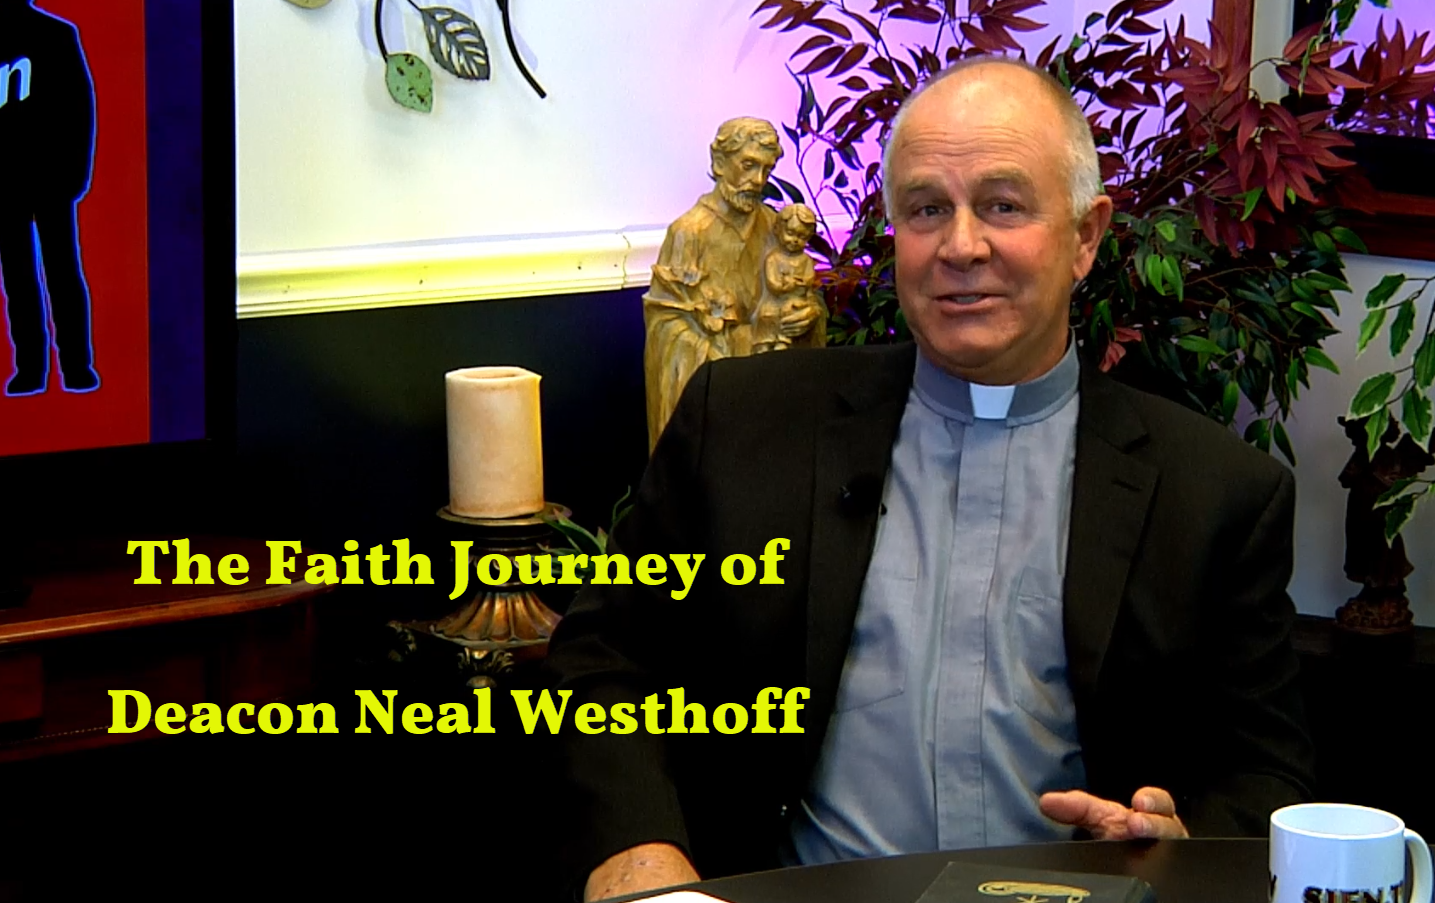 The Faith Journey of Deacon Neal Westhoff